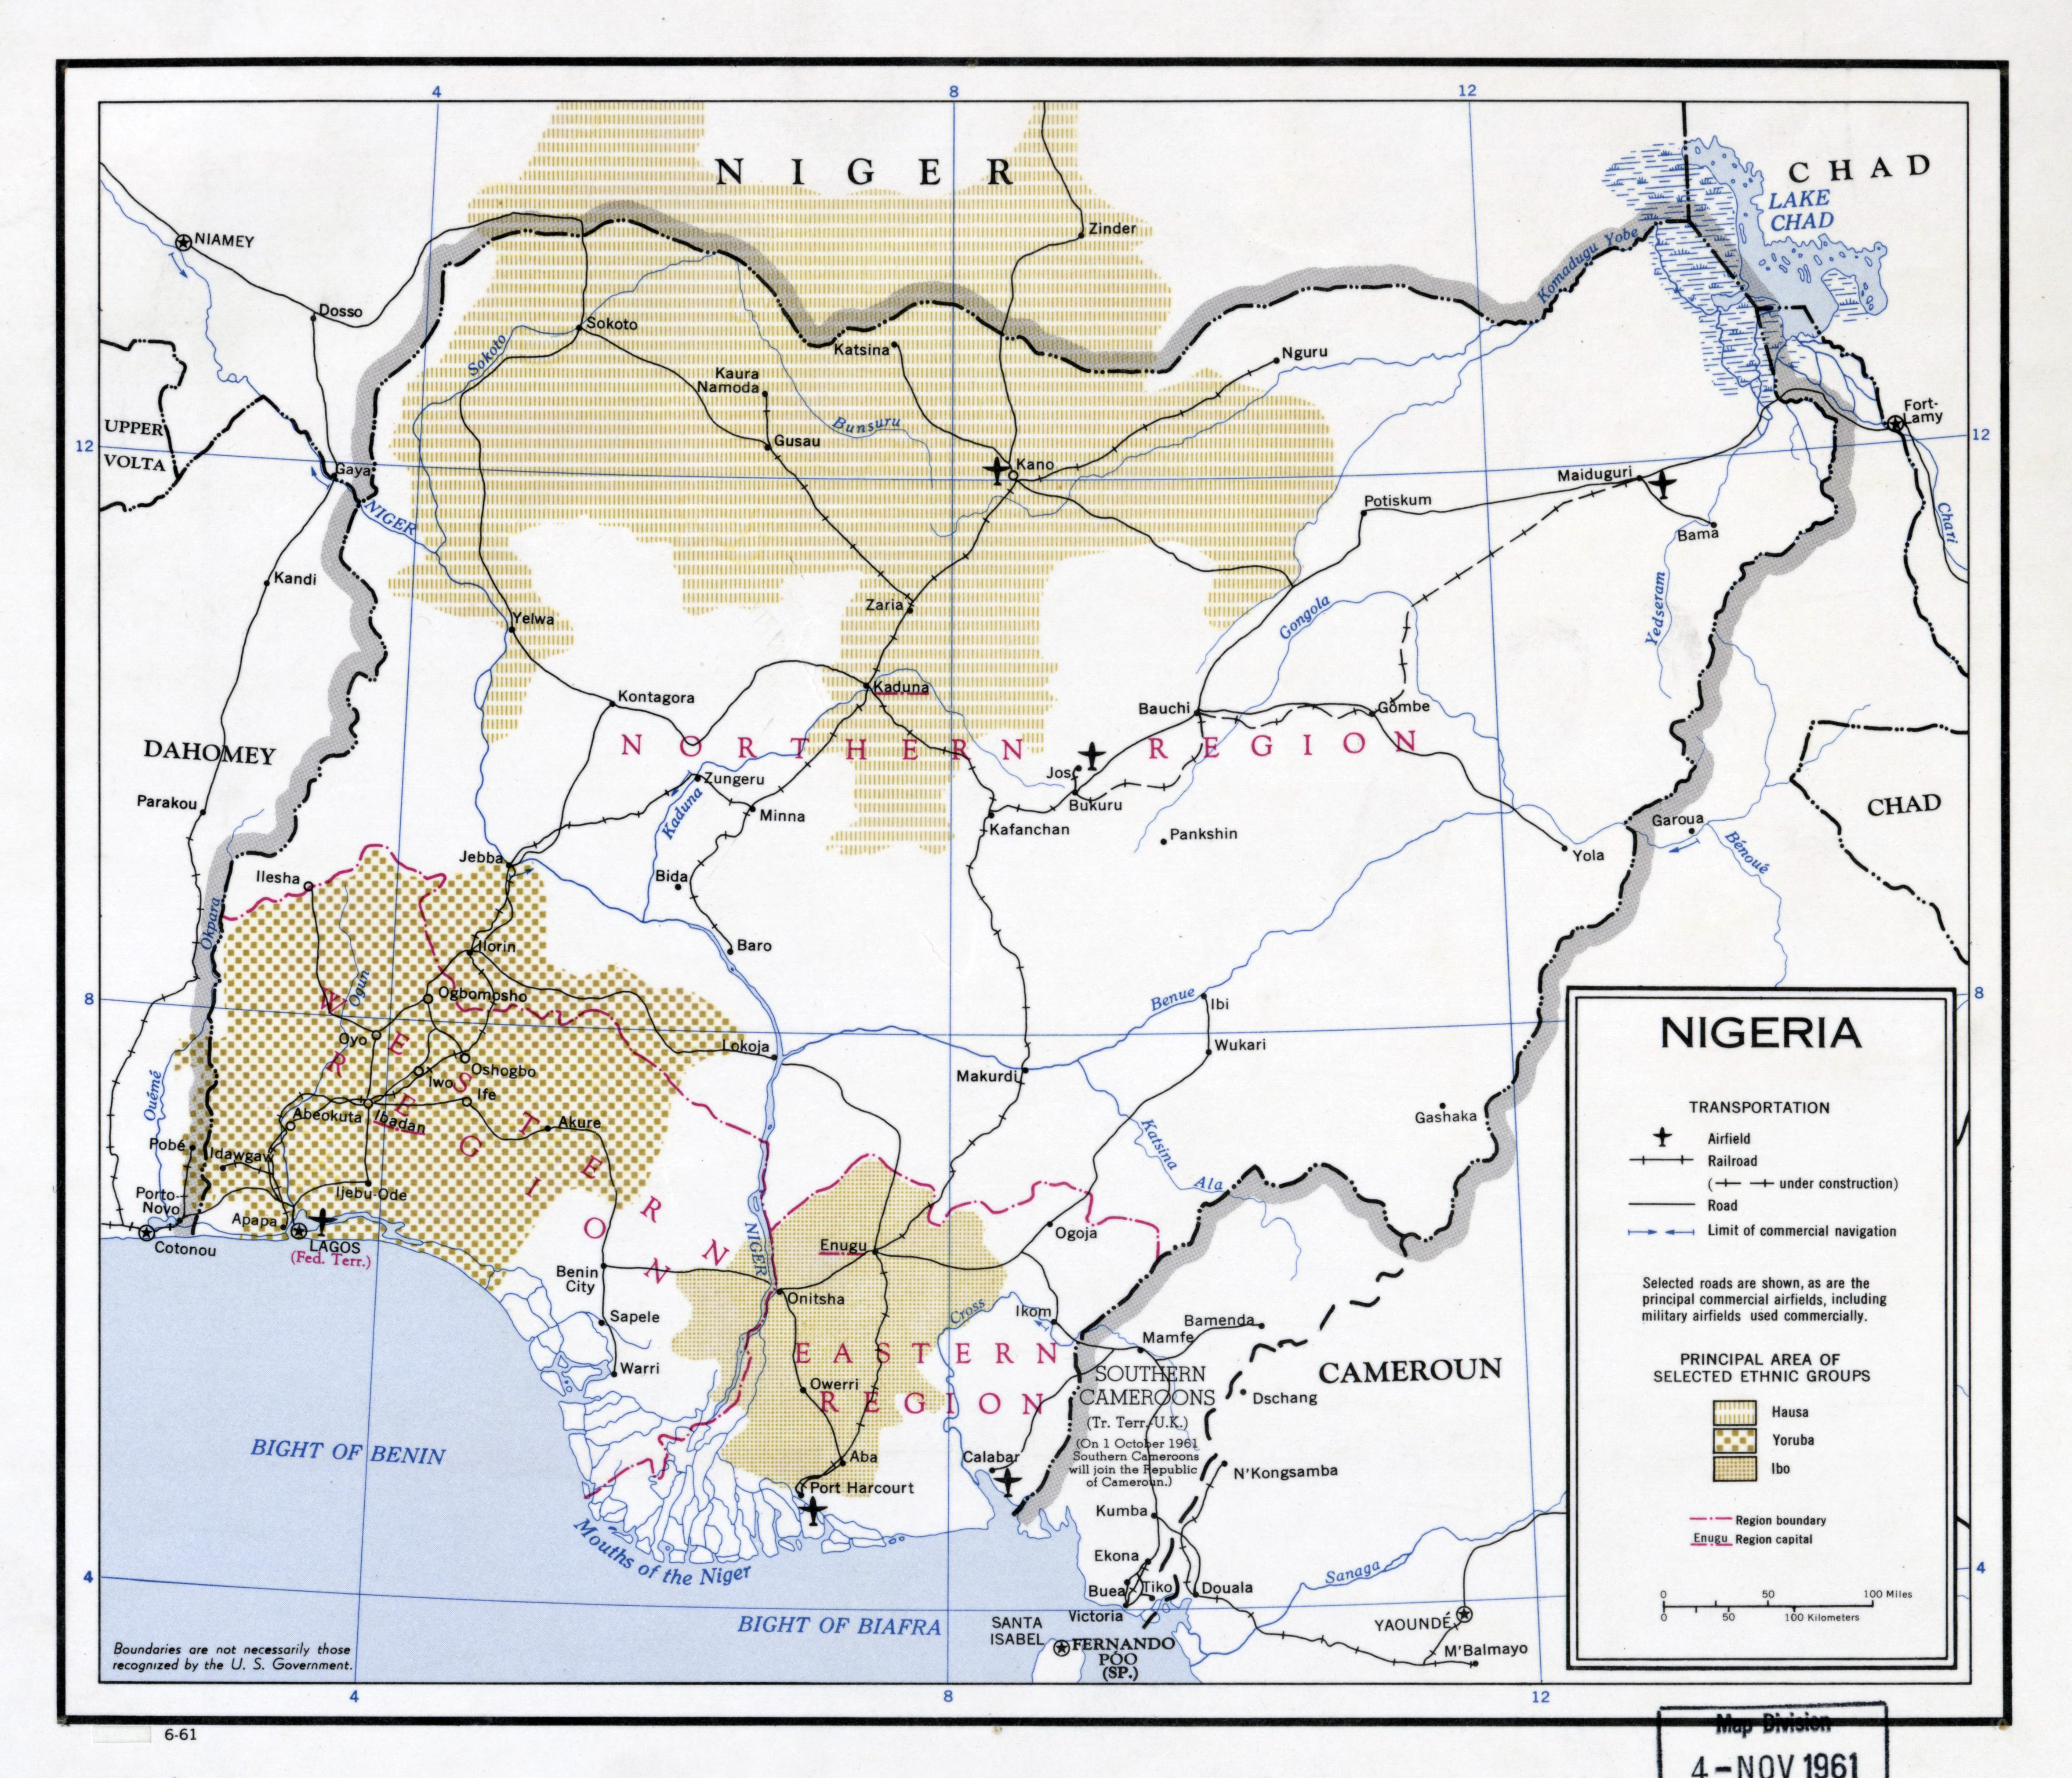 Large scale map of Nigeria with roads, railroads, major cities and ...